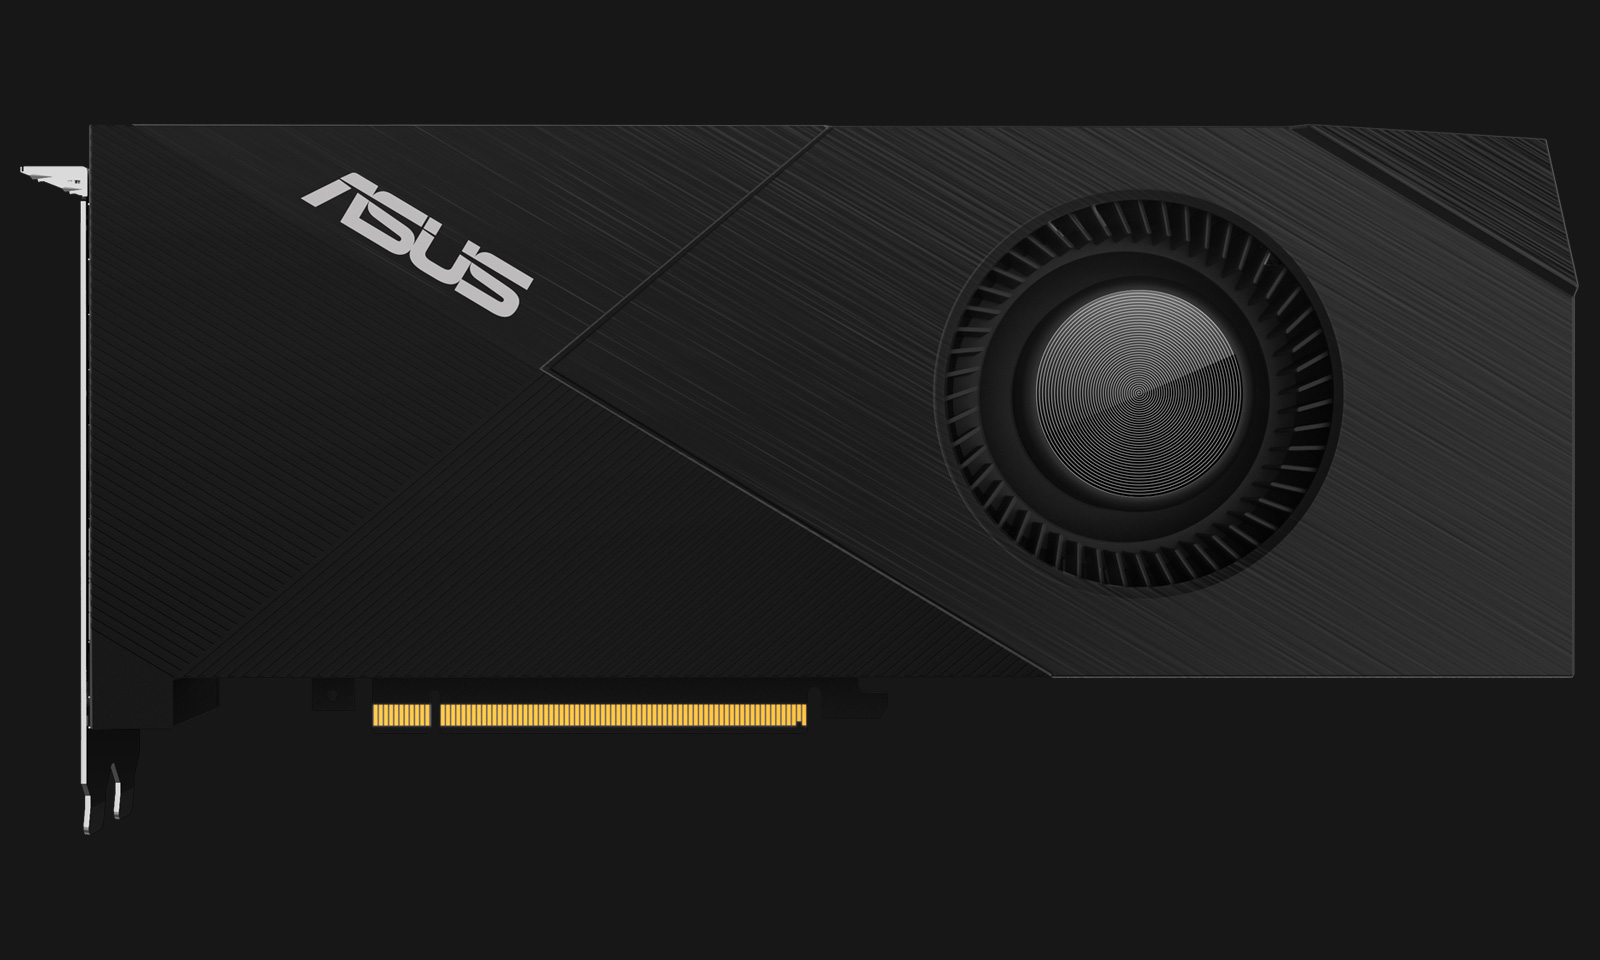 ASUS RTX 2080 Ti TURBO